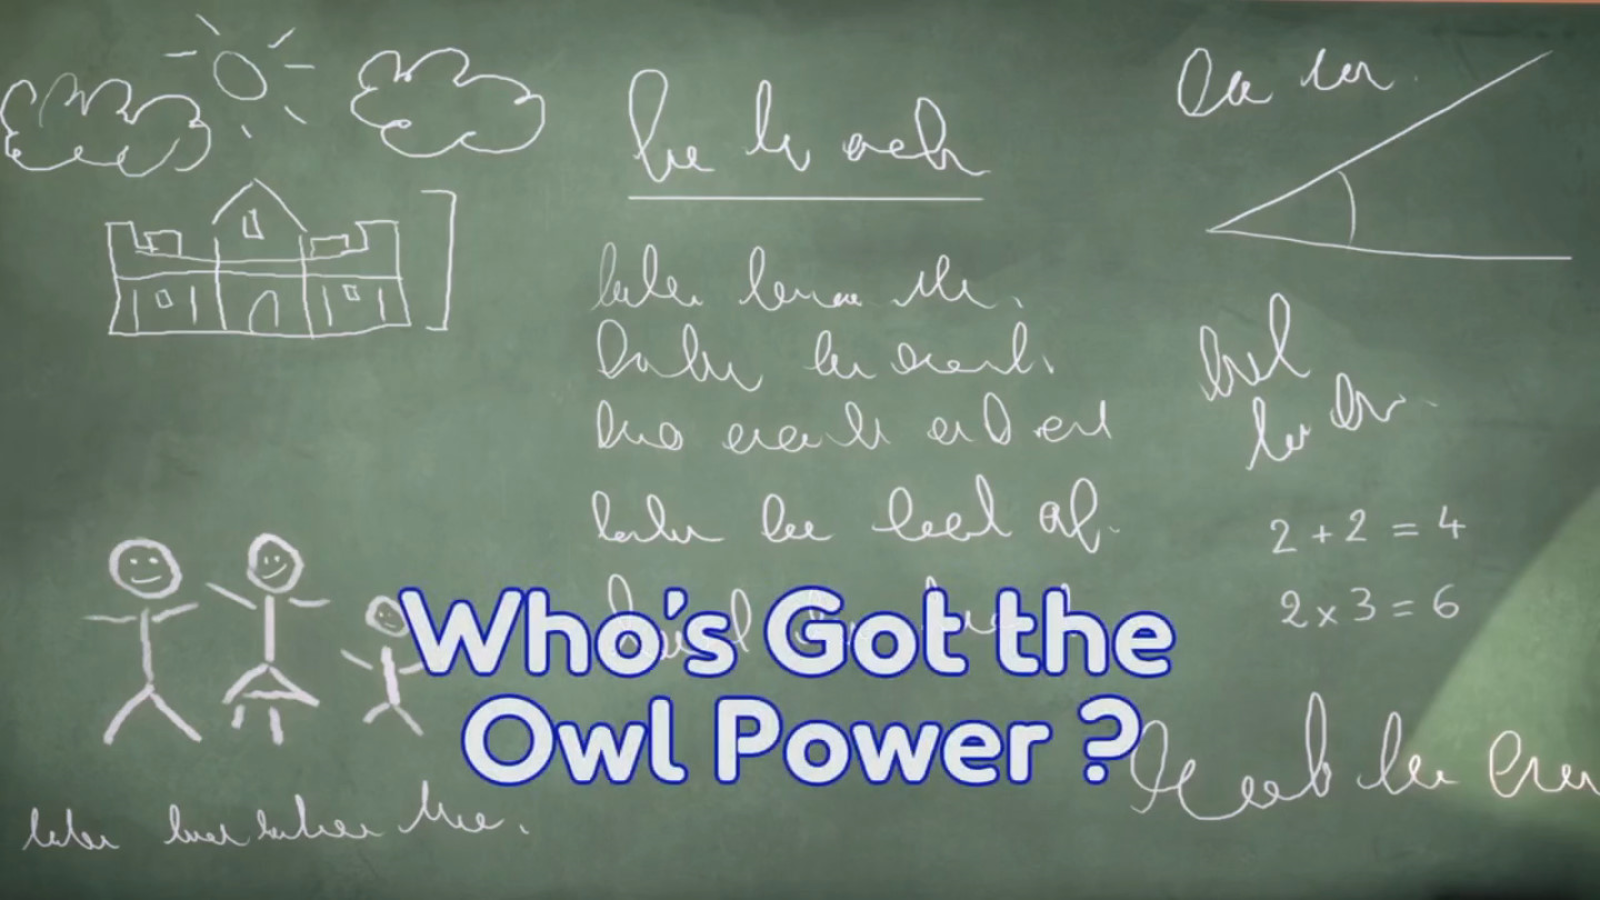 Who's Got the Owl Power?